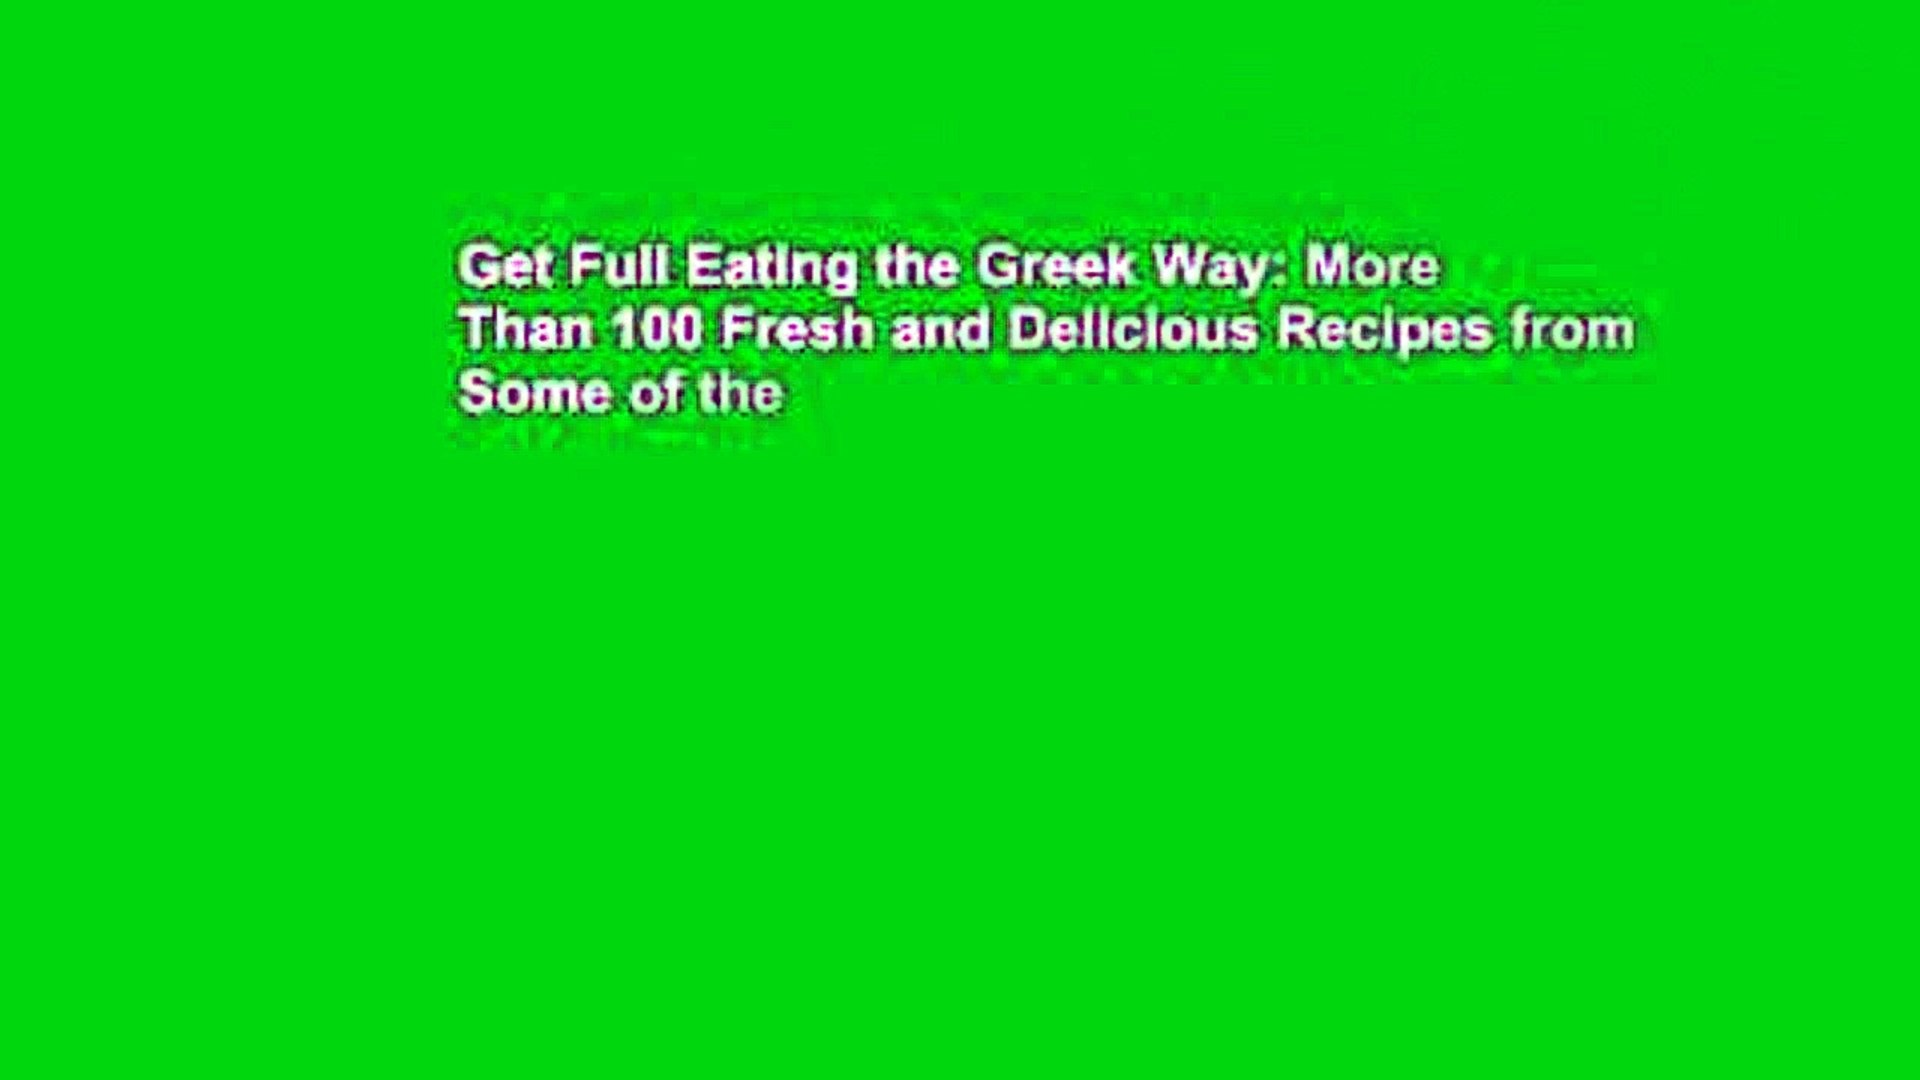 Get Full Eating the Greek Way: More Than 100 Fresh and Delicious Recipes from Some of the